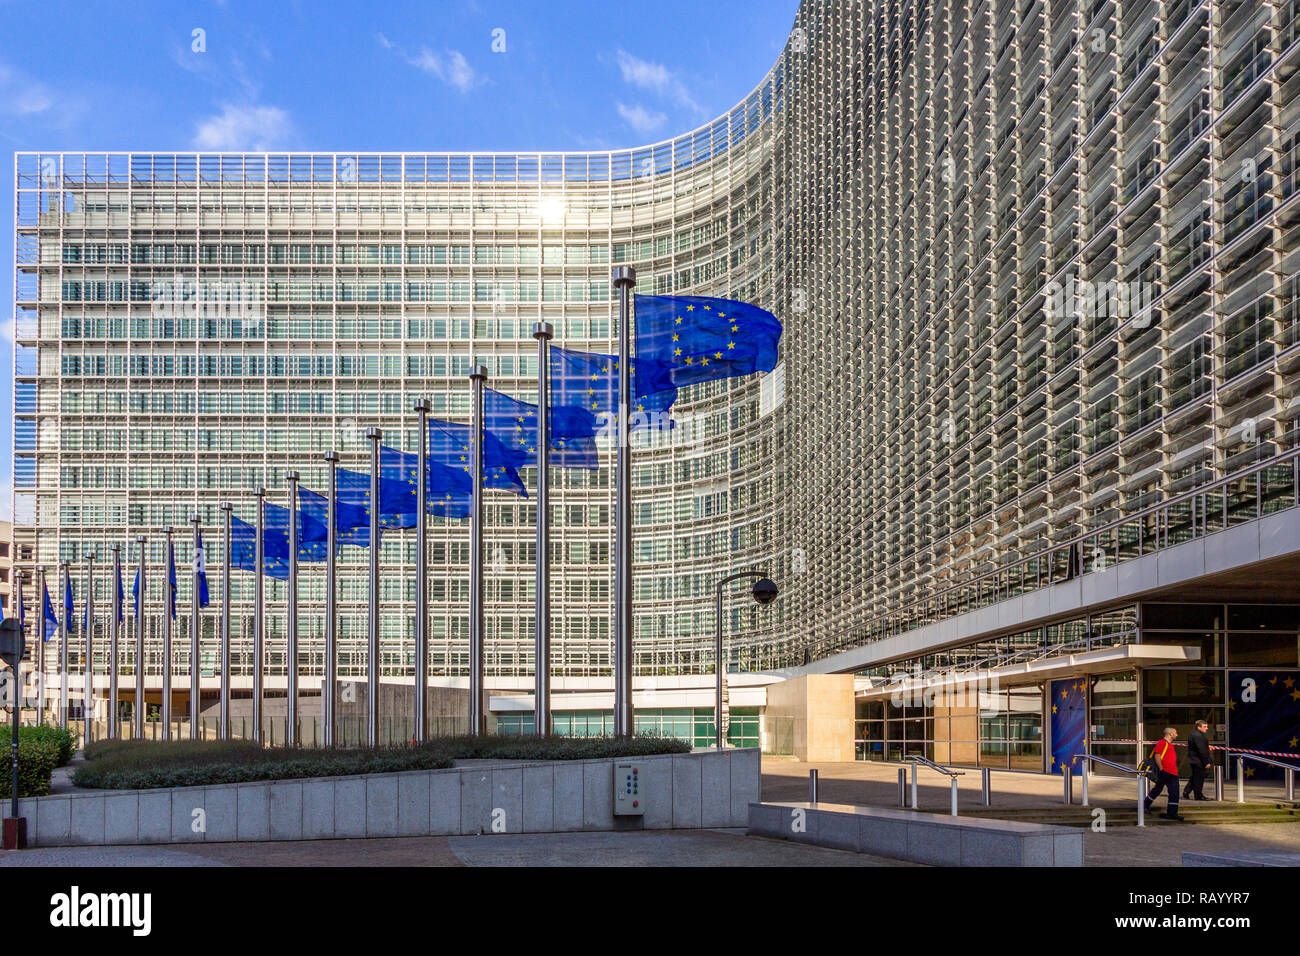 BRUSSELS, BELGIUM - JUL 30, 2014: Row of EU Flags in front of the European Union Commission building in Brussels. - Stock Image